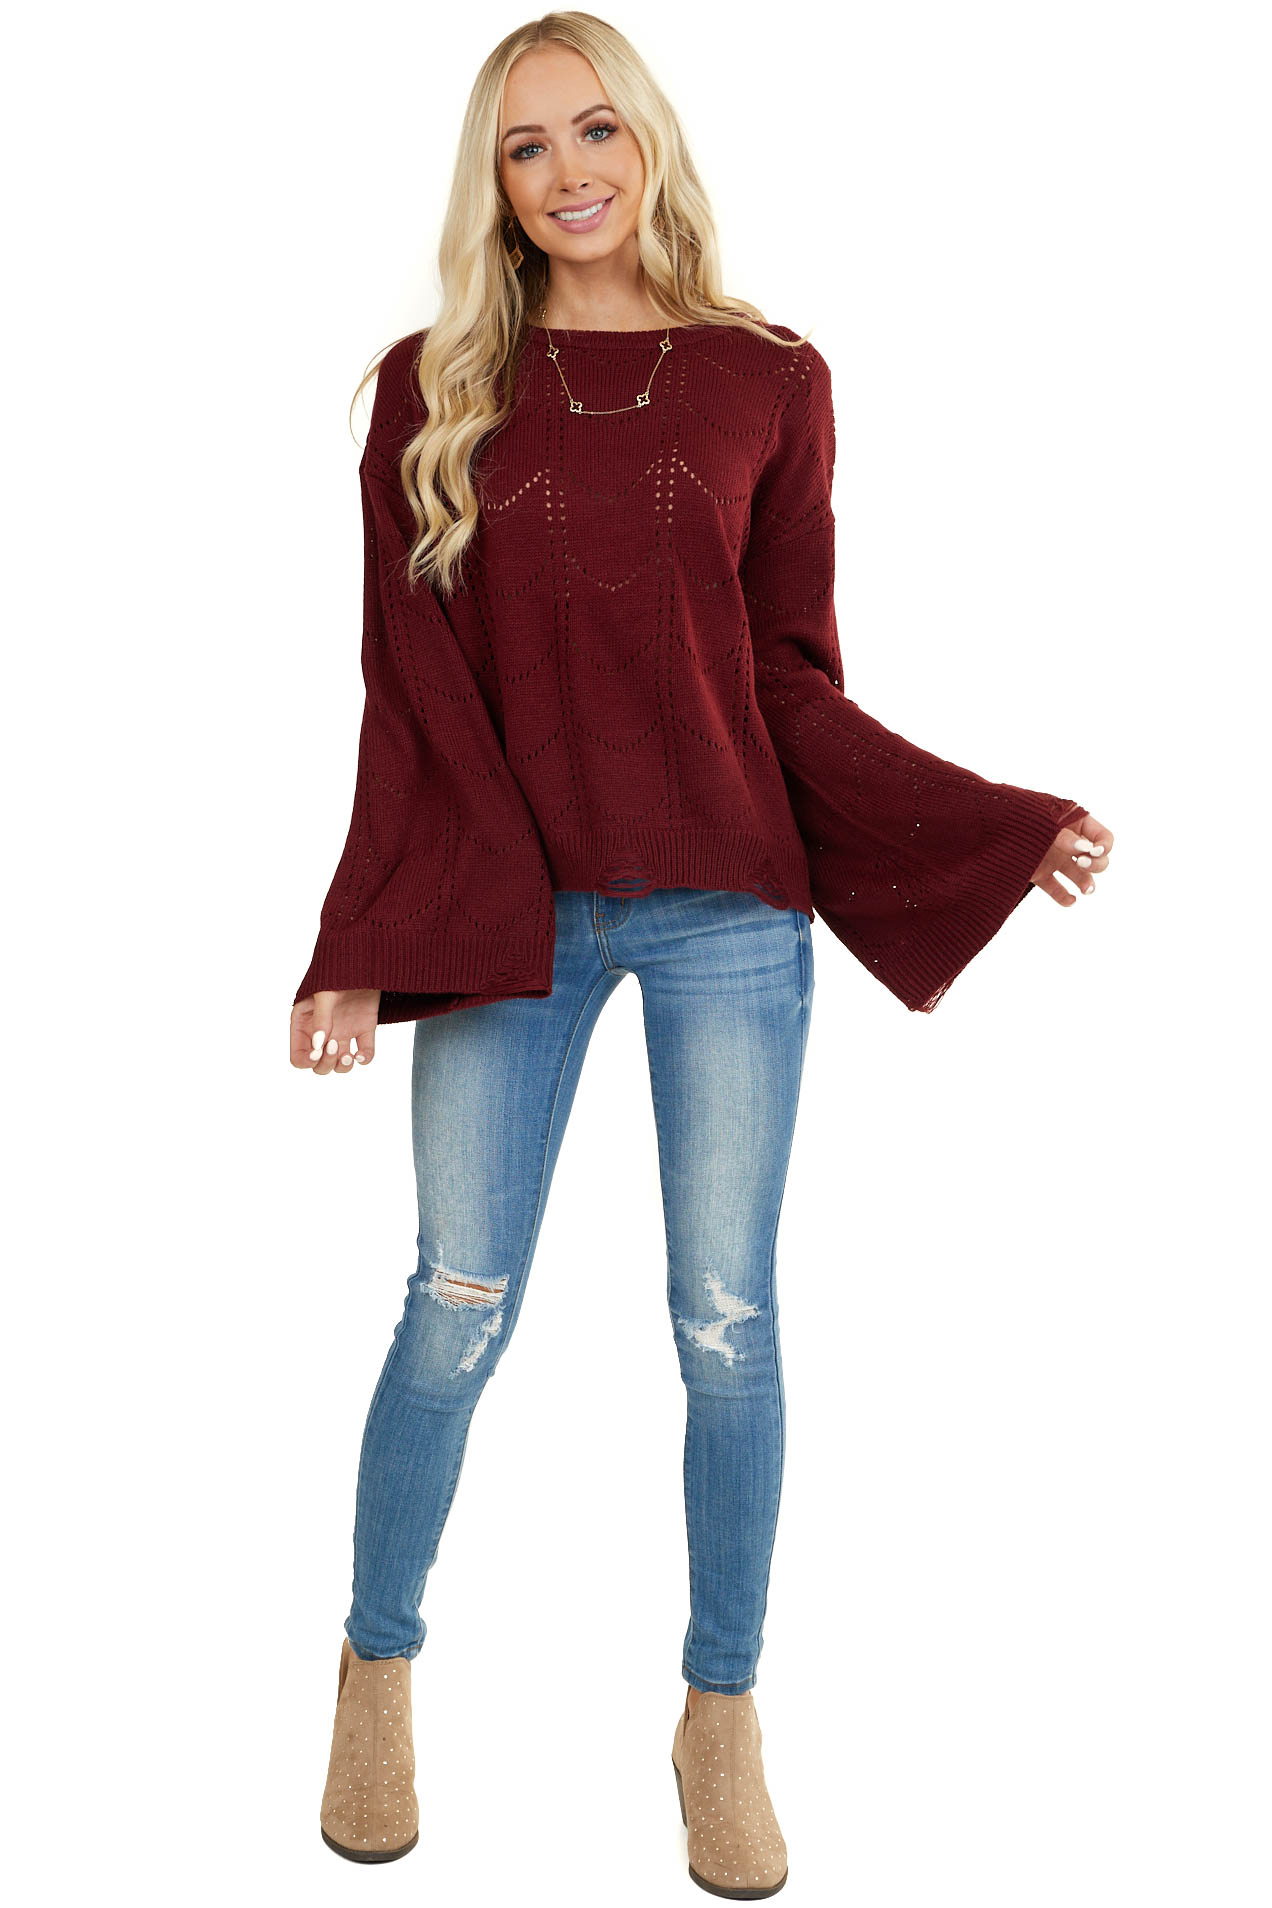 Burgundy Patterned Sweater with Distressed Details